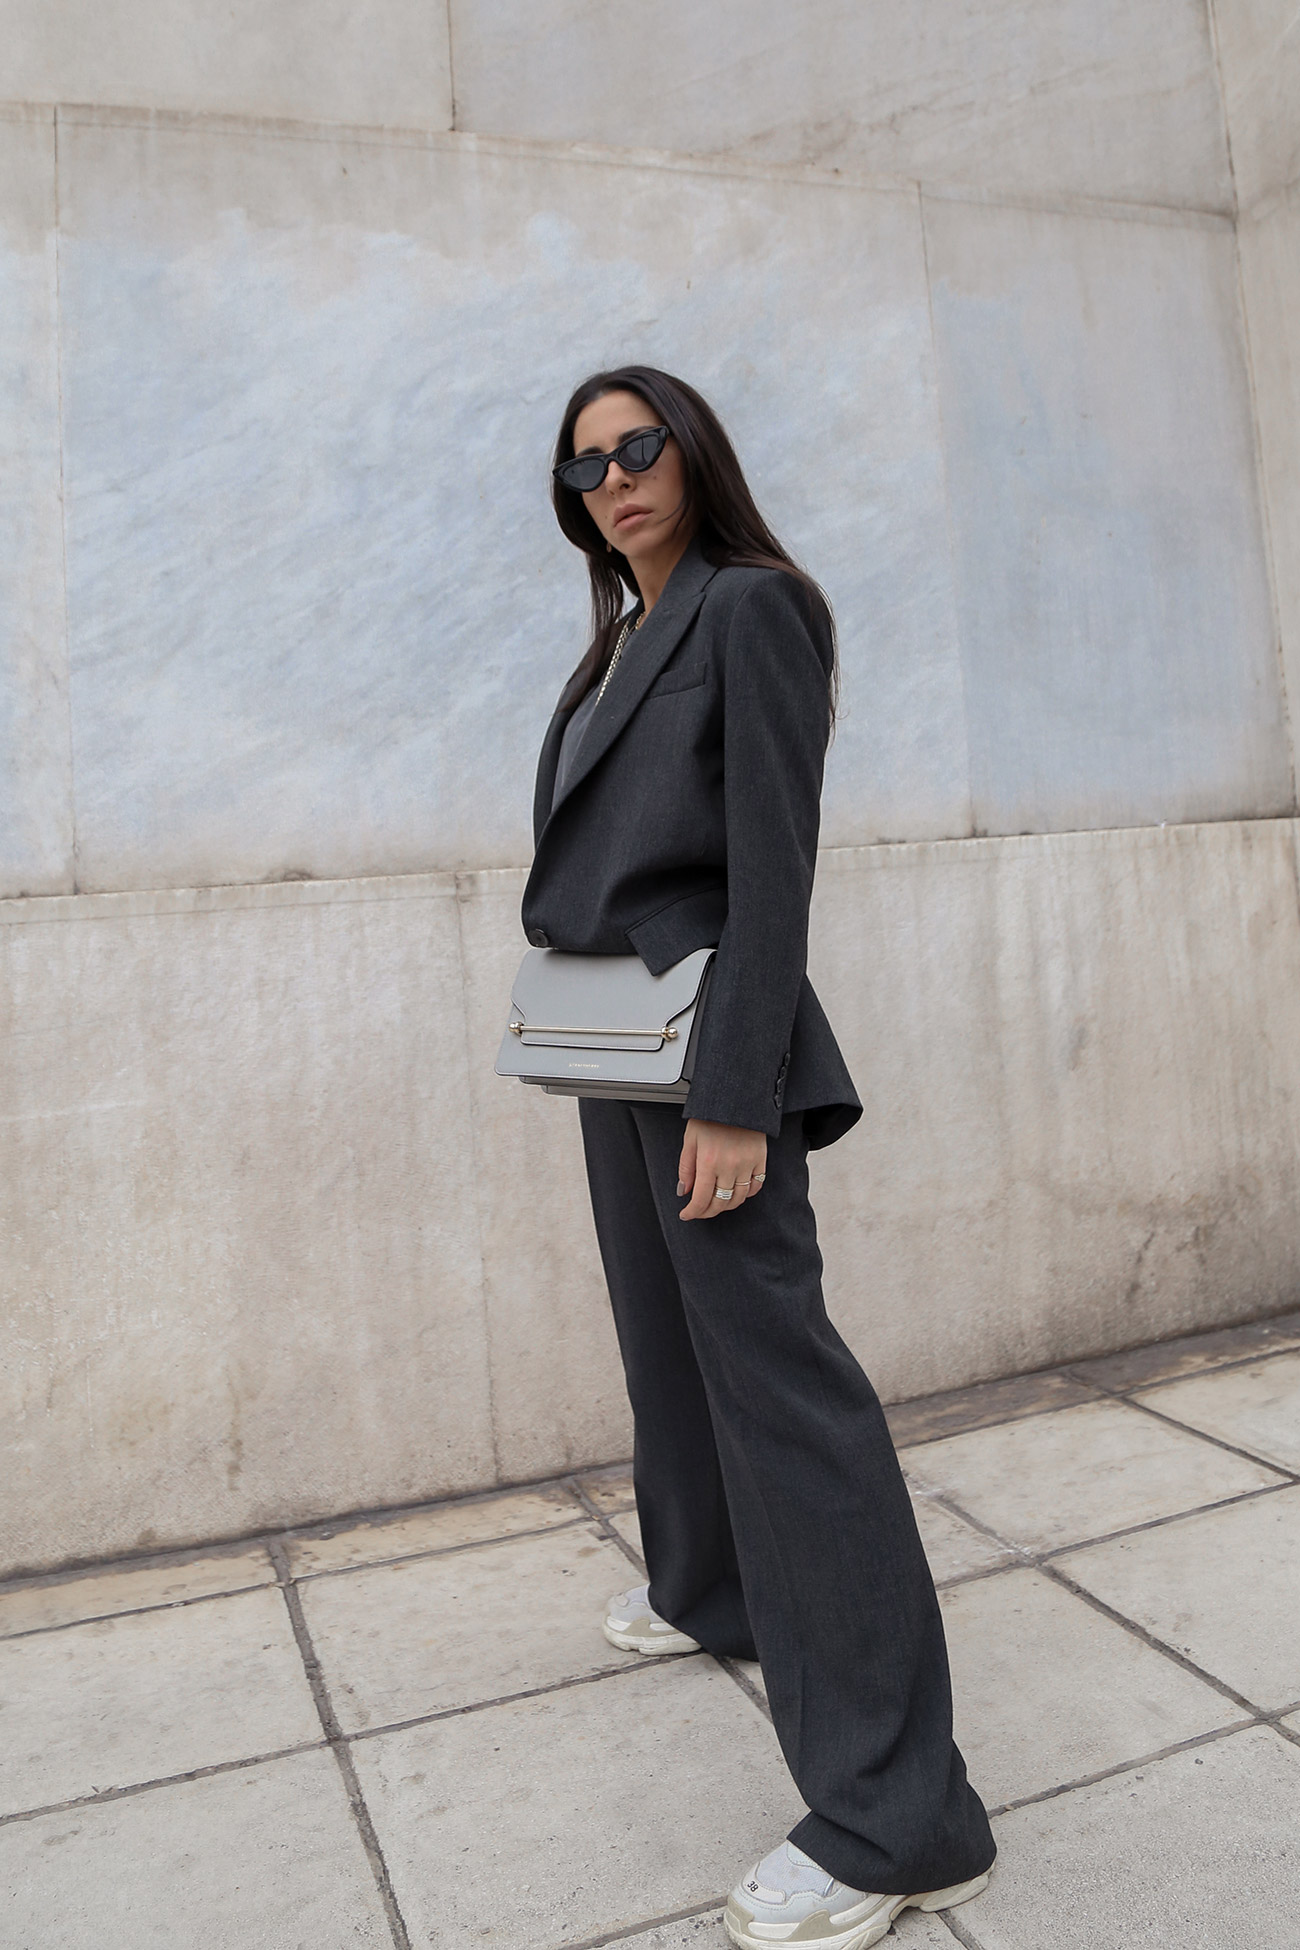 How To Wear A Women's Suit Casually